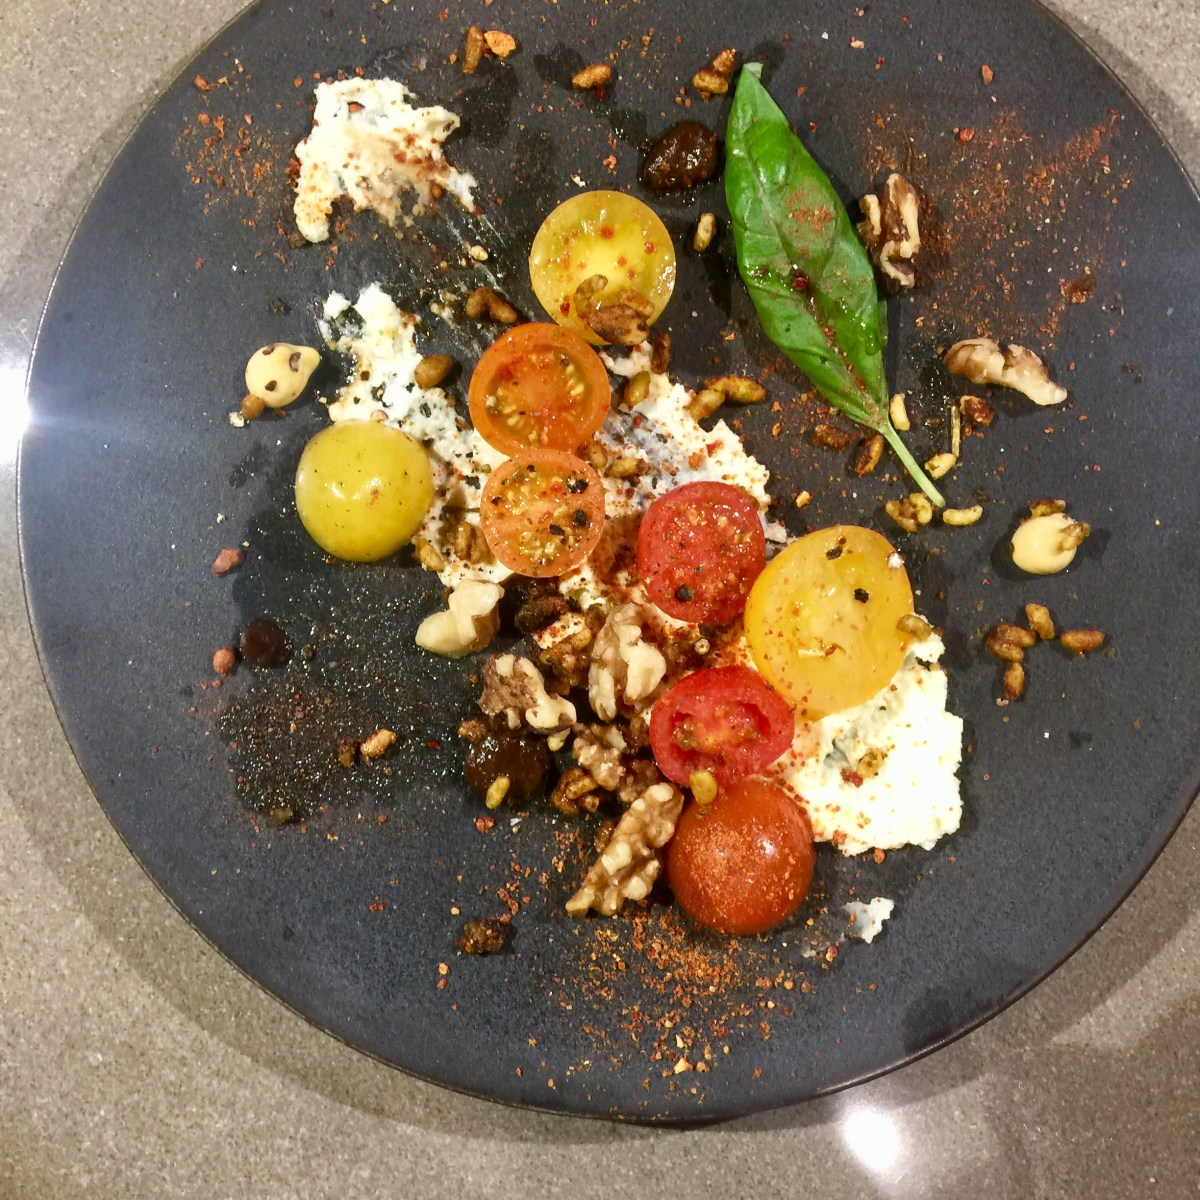 Tomato salad with sheep cheese and granola.